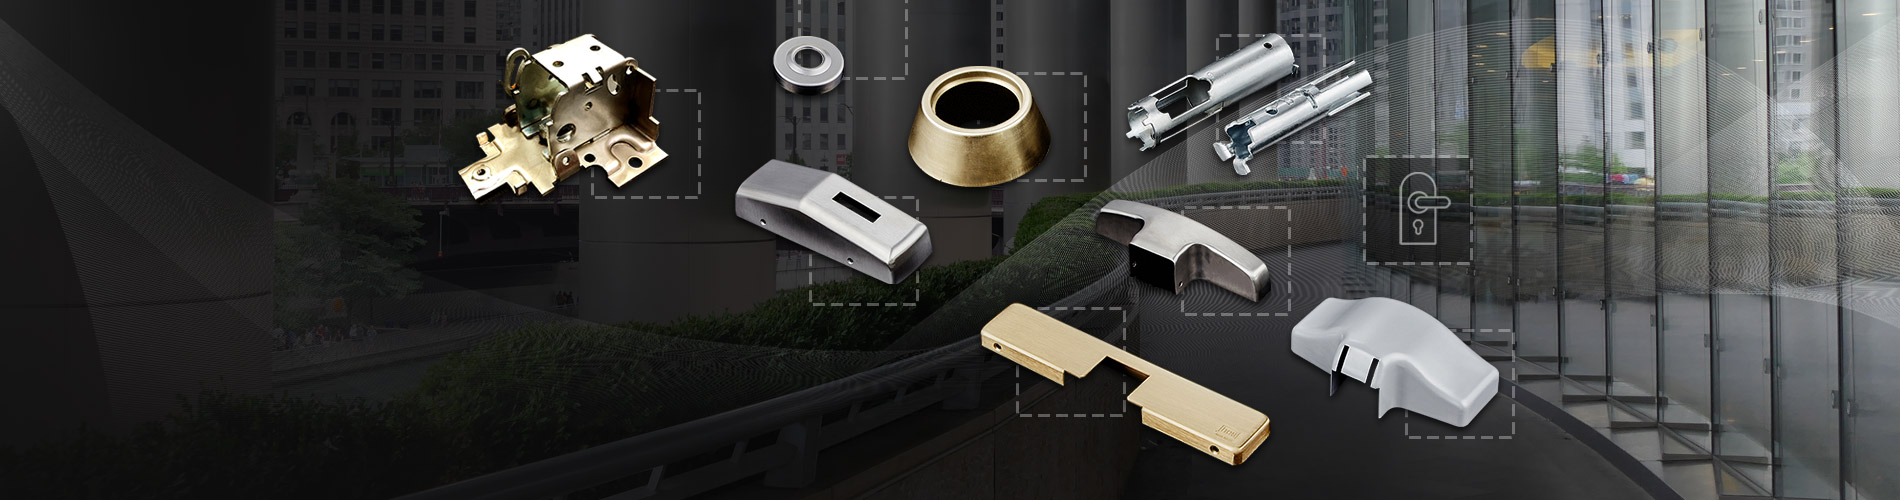 Commercial Grade Door Lock Components